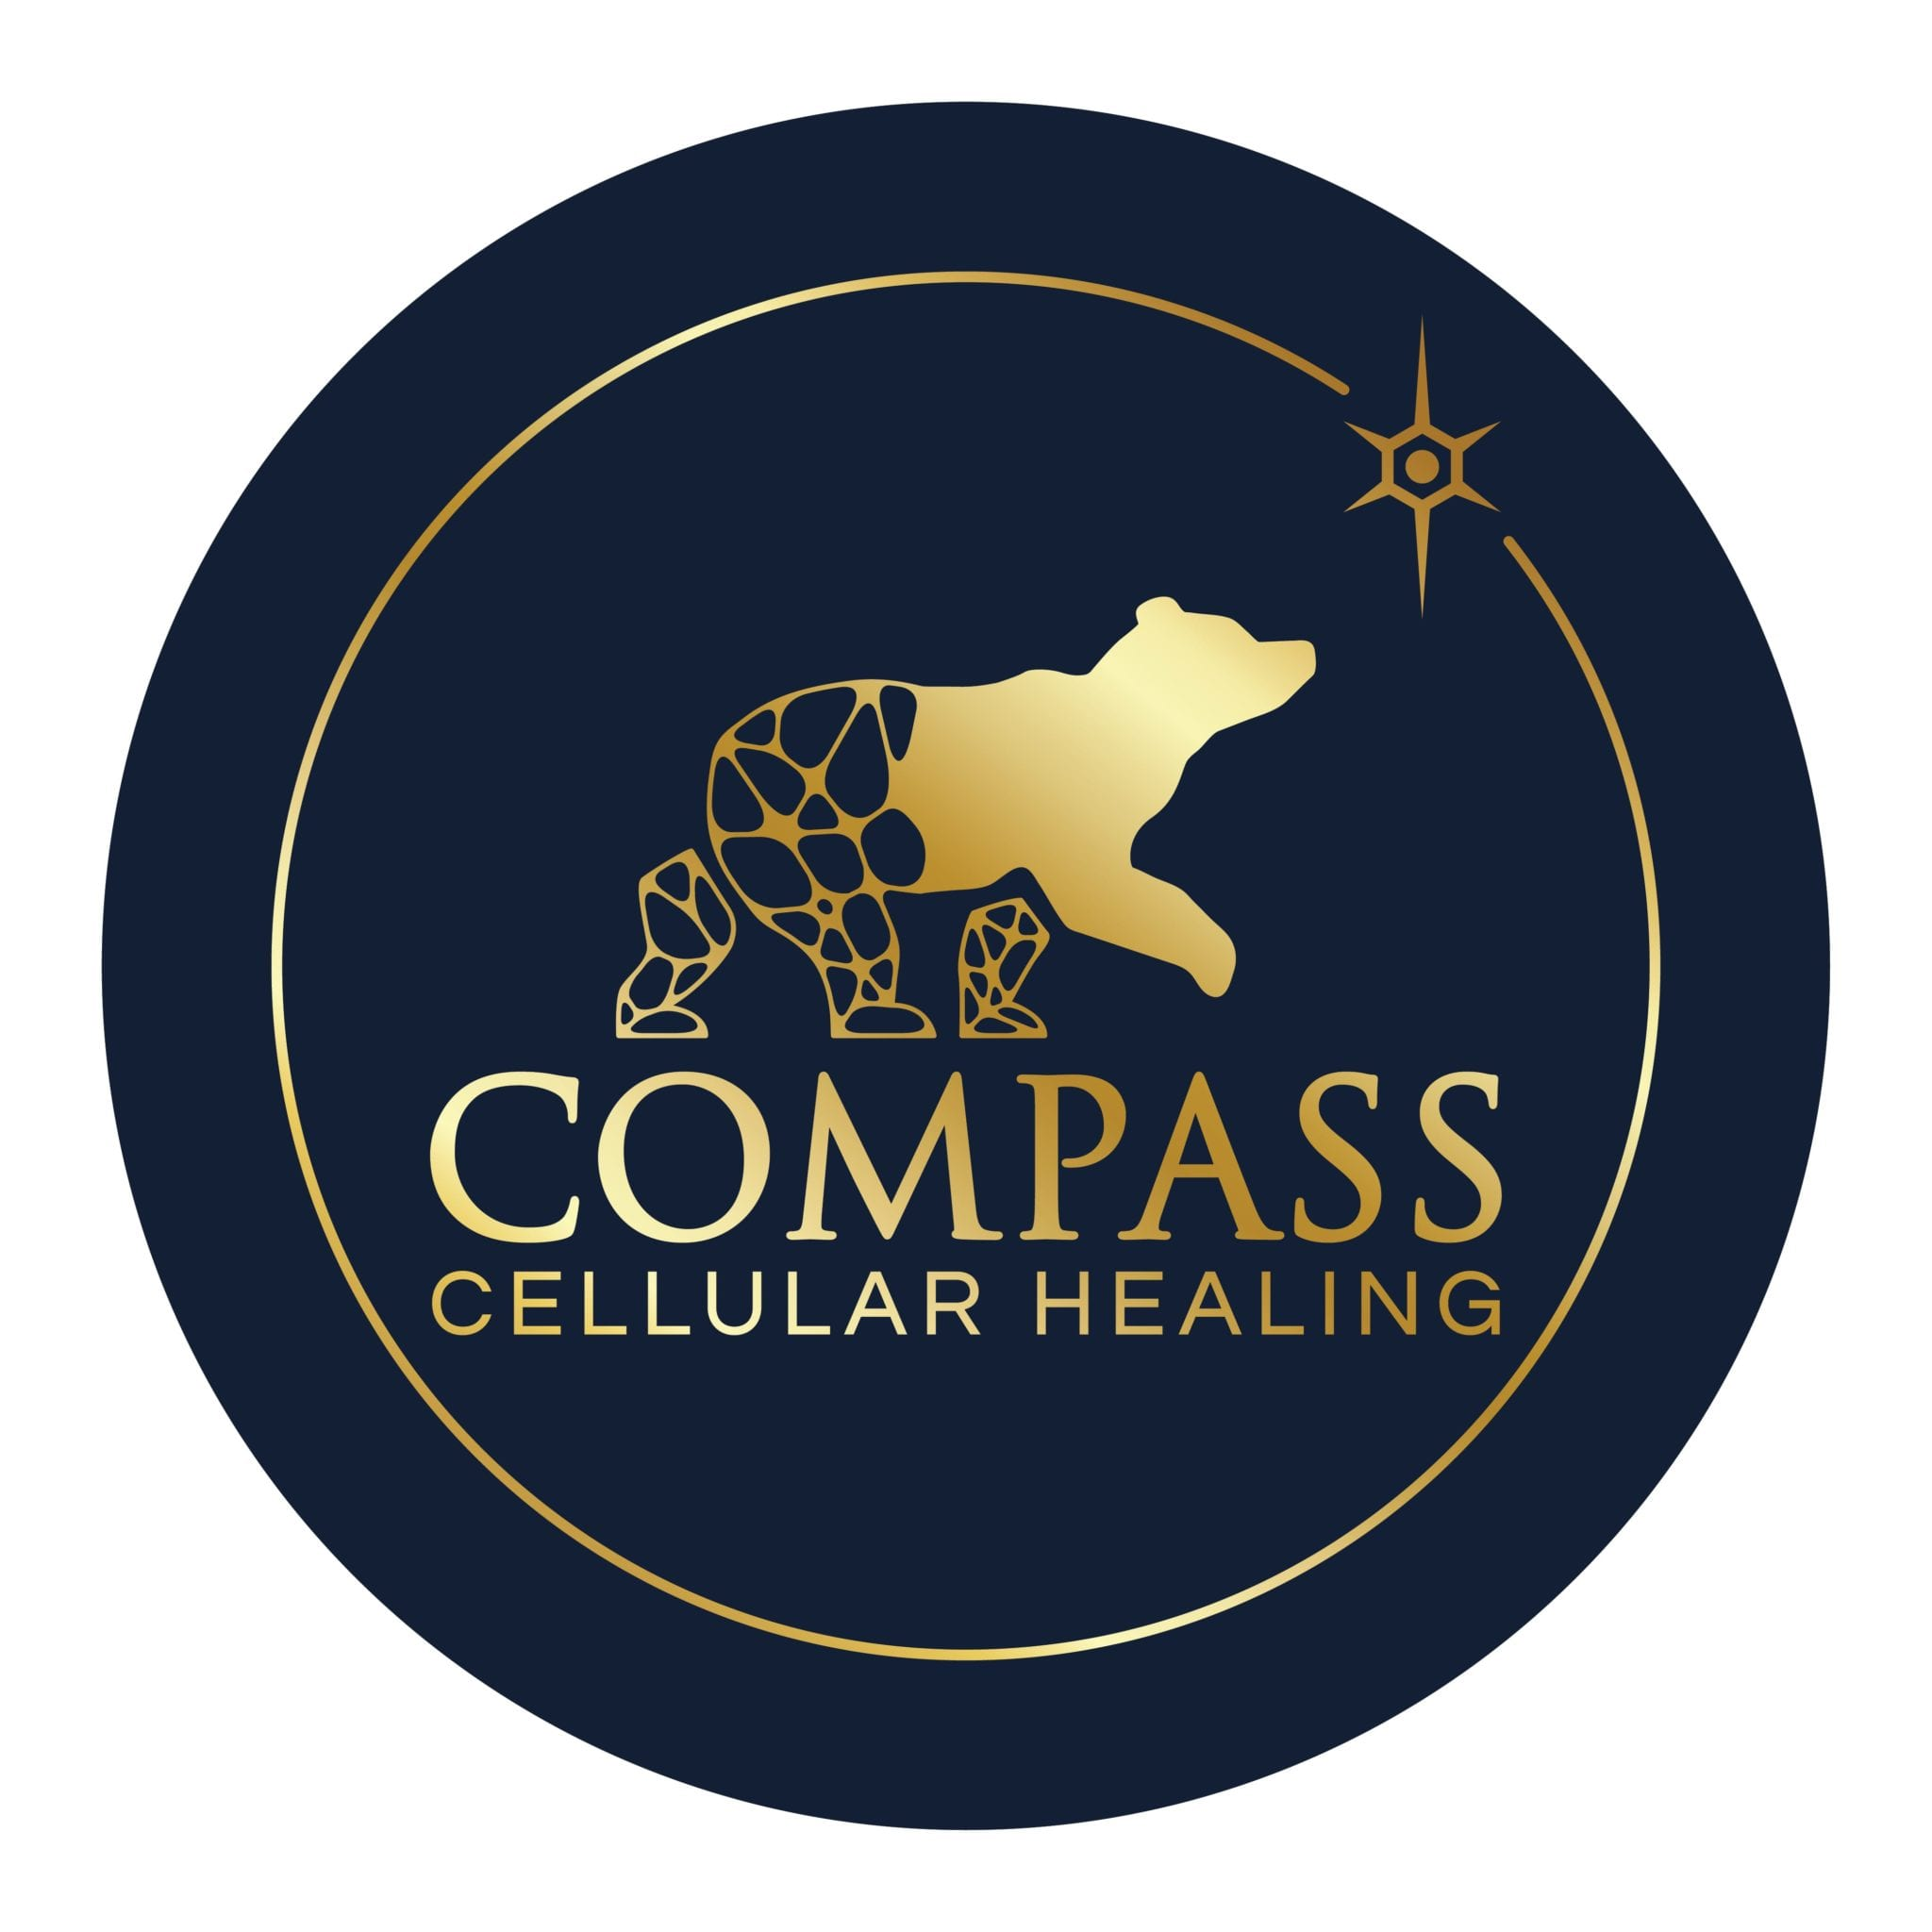 Compass Gold Circular on Navy